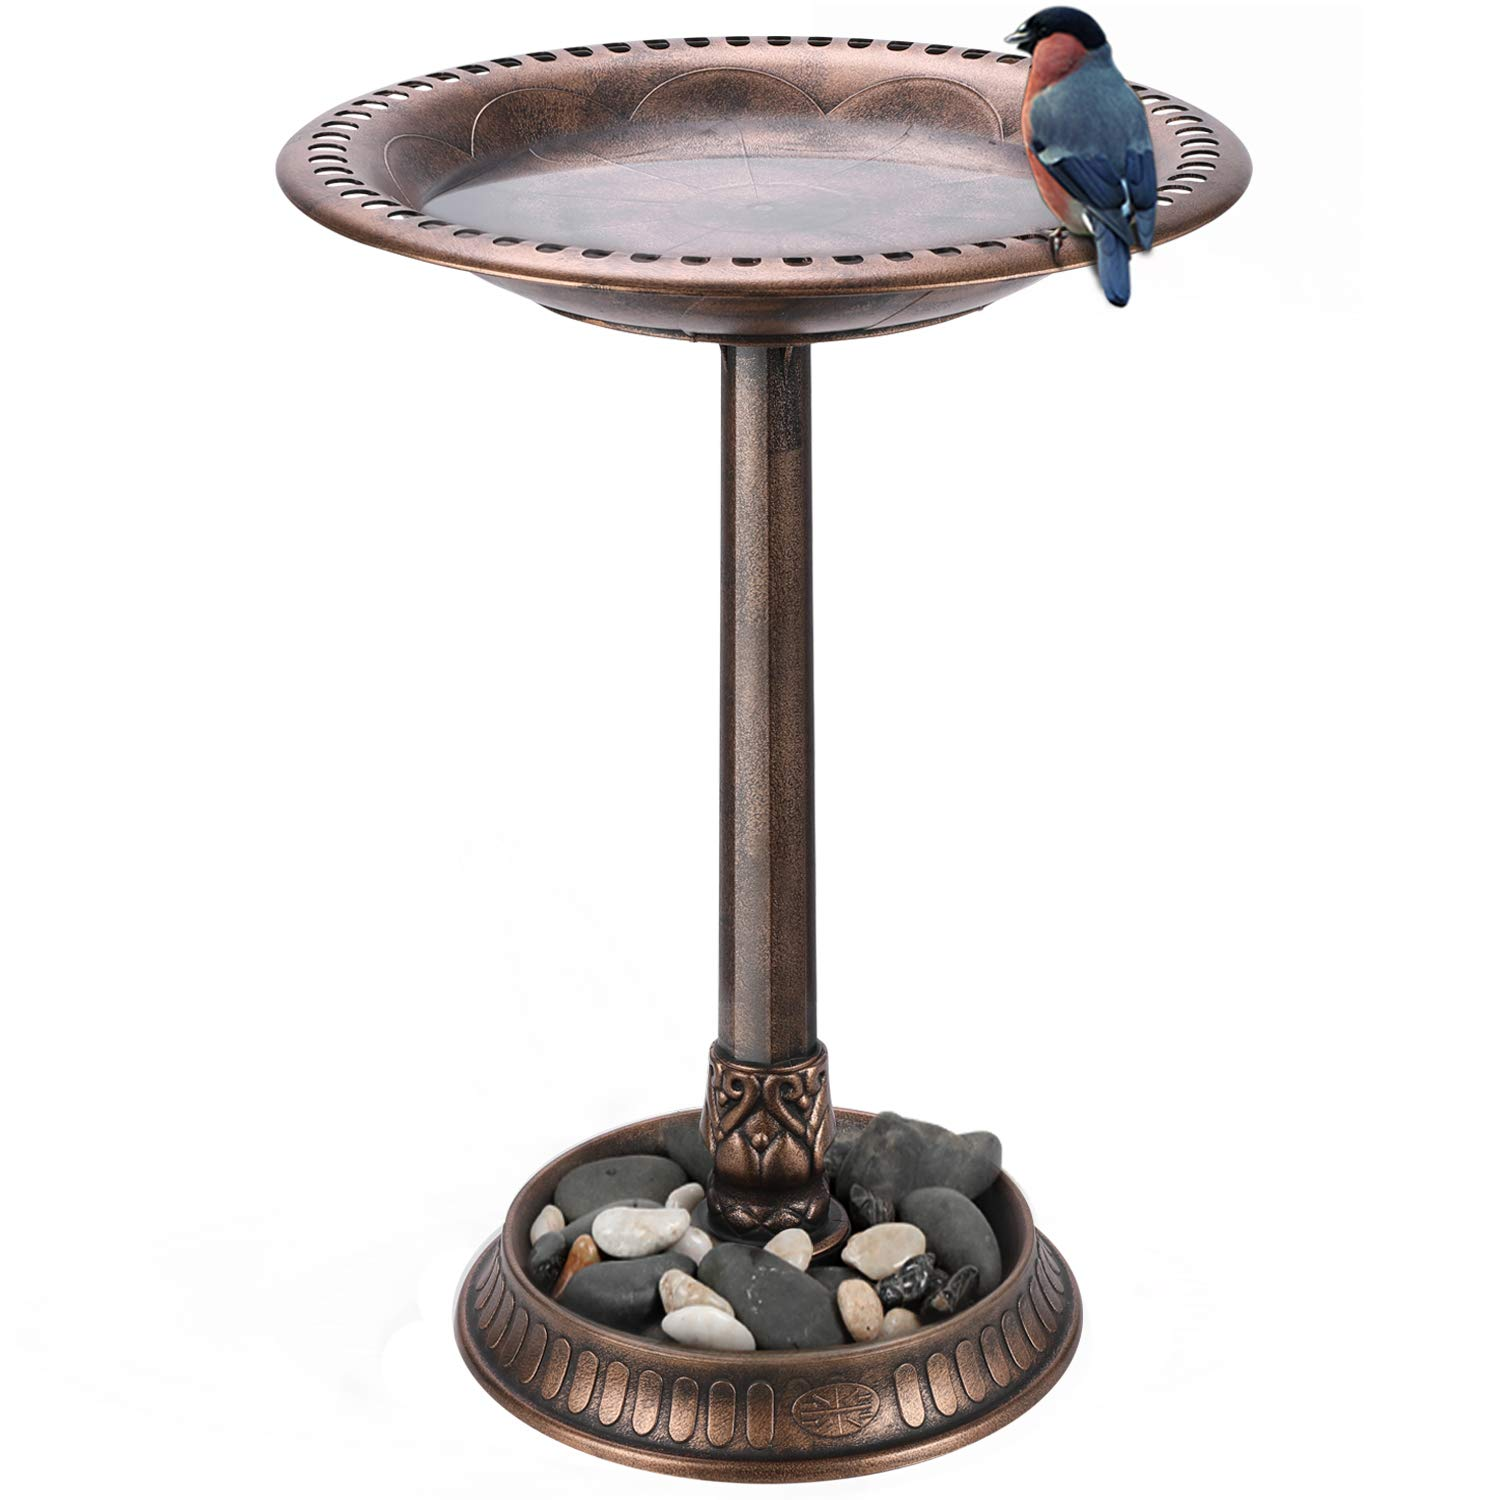 "VIVOSUN 2-in-1 Outdoor Garden Bird Bath with Flower Planter Base, Weather-Resistant Garden Décor, 28"" High Copper"